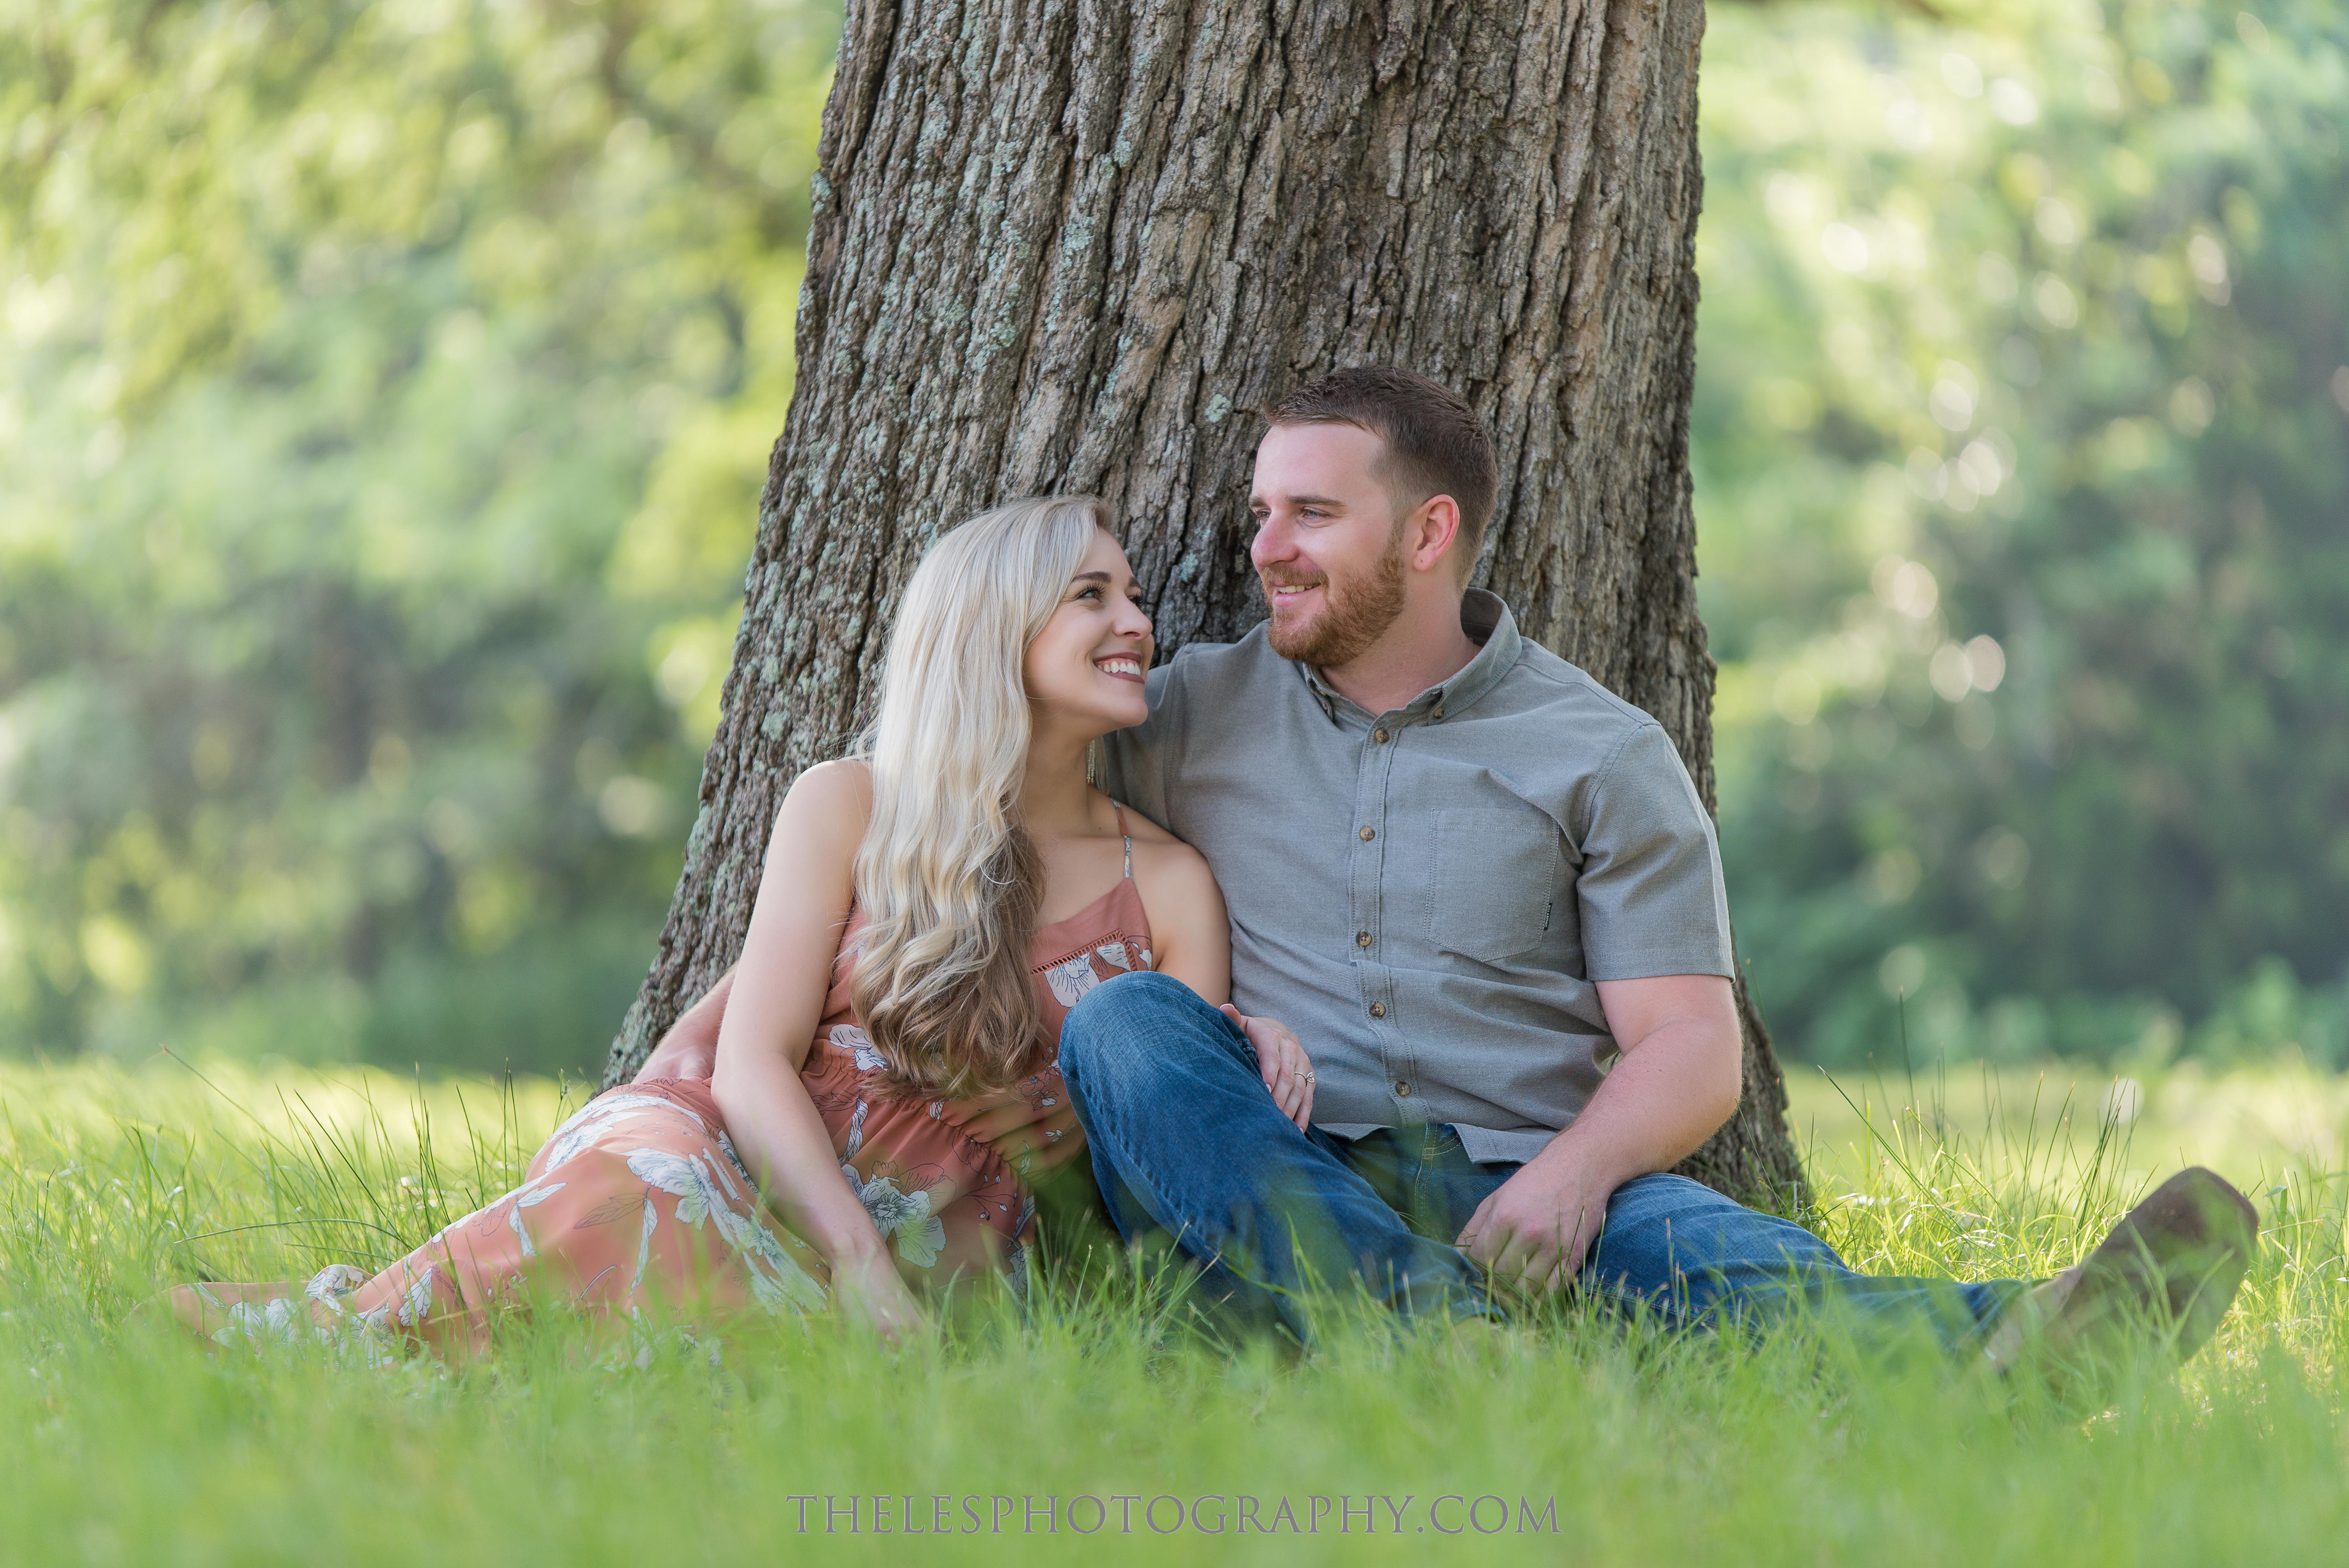 The Les Photography - Dallas Wedding Photographer - Trinity Groves Engagement - Haley and Noah 12